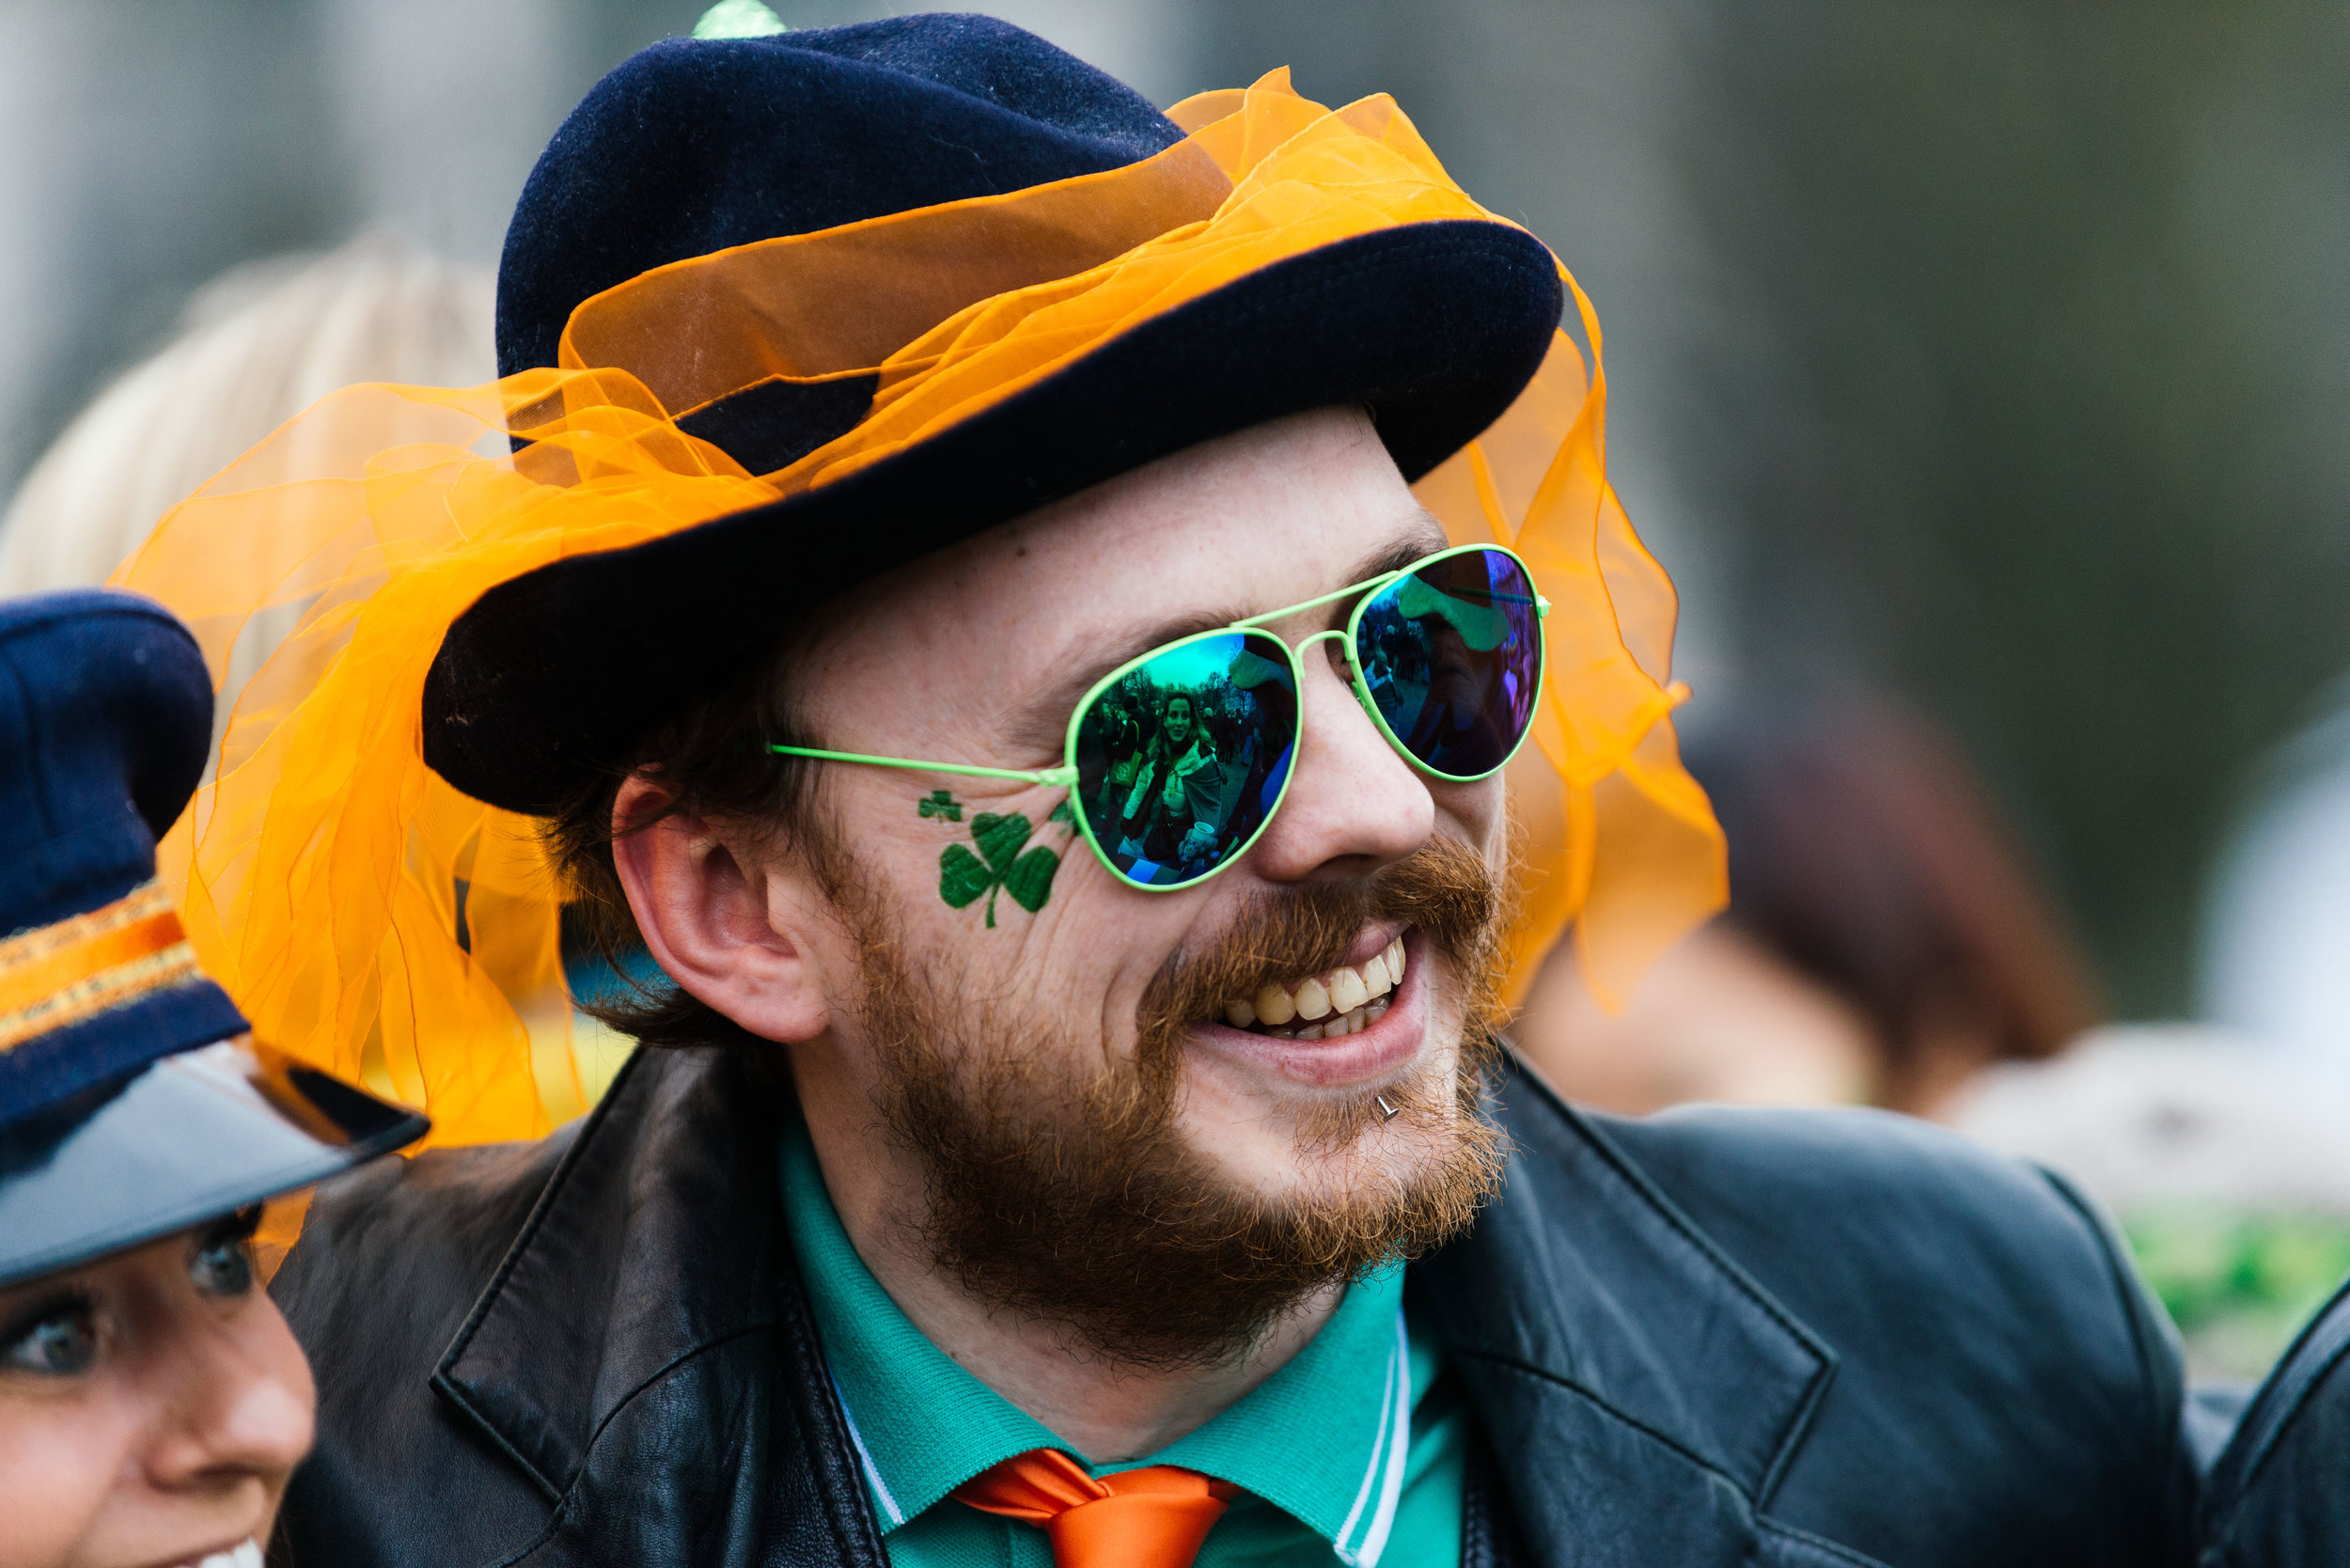 st-patricks-day-berlin-all-48.jpg